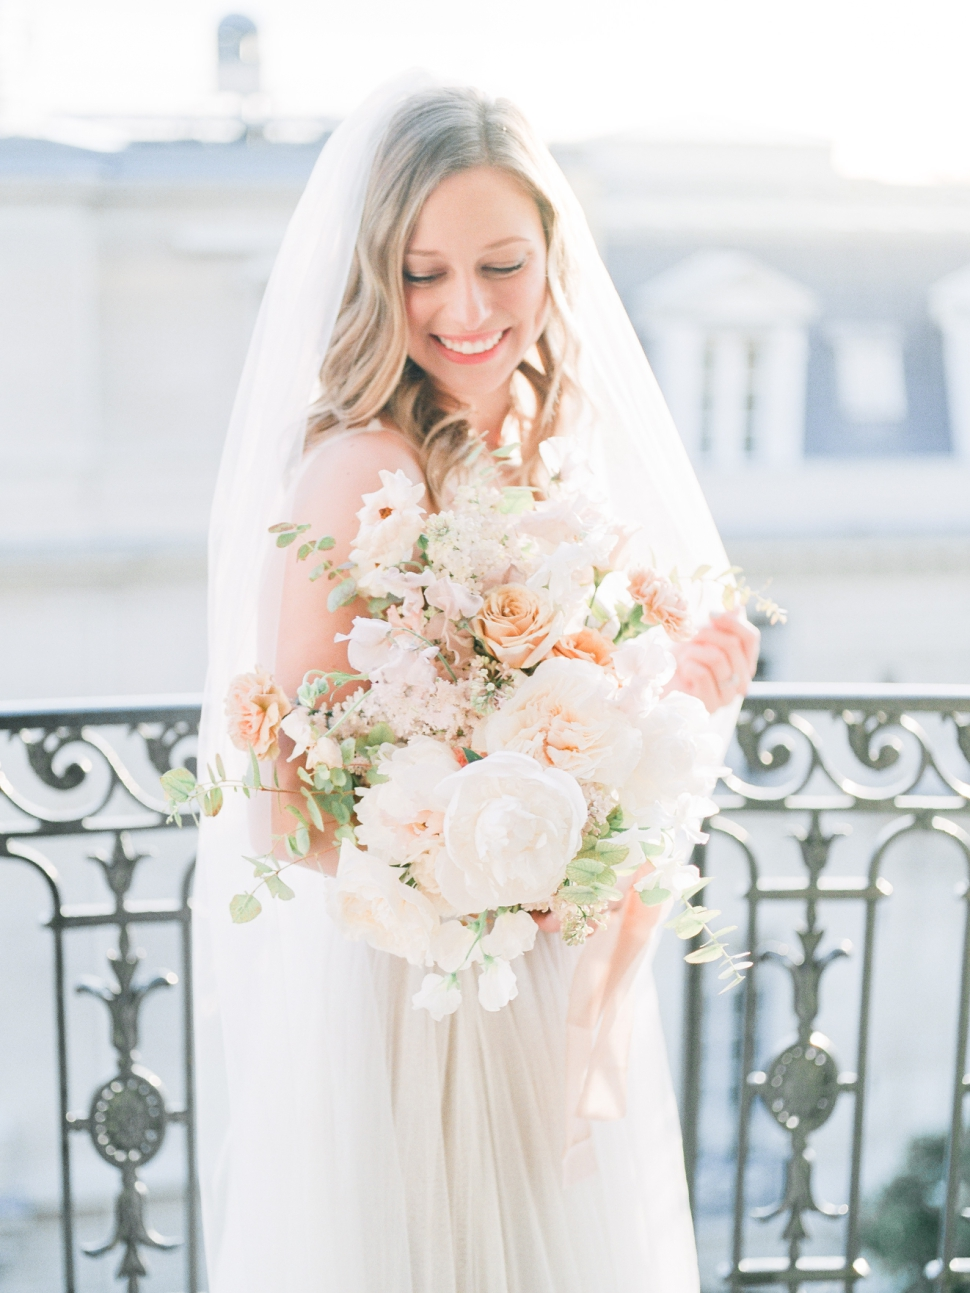 Paris-France-Destination-Wedding-Photographer-Cassi-Claire-Shangri-La-Paris-Wedding-Photos_002.jpg